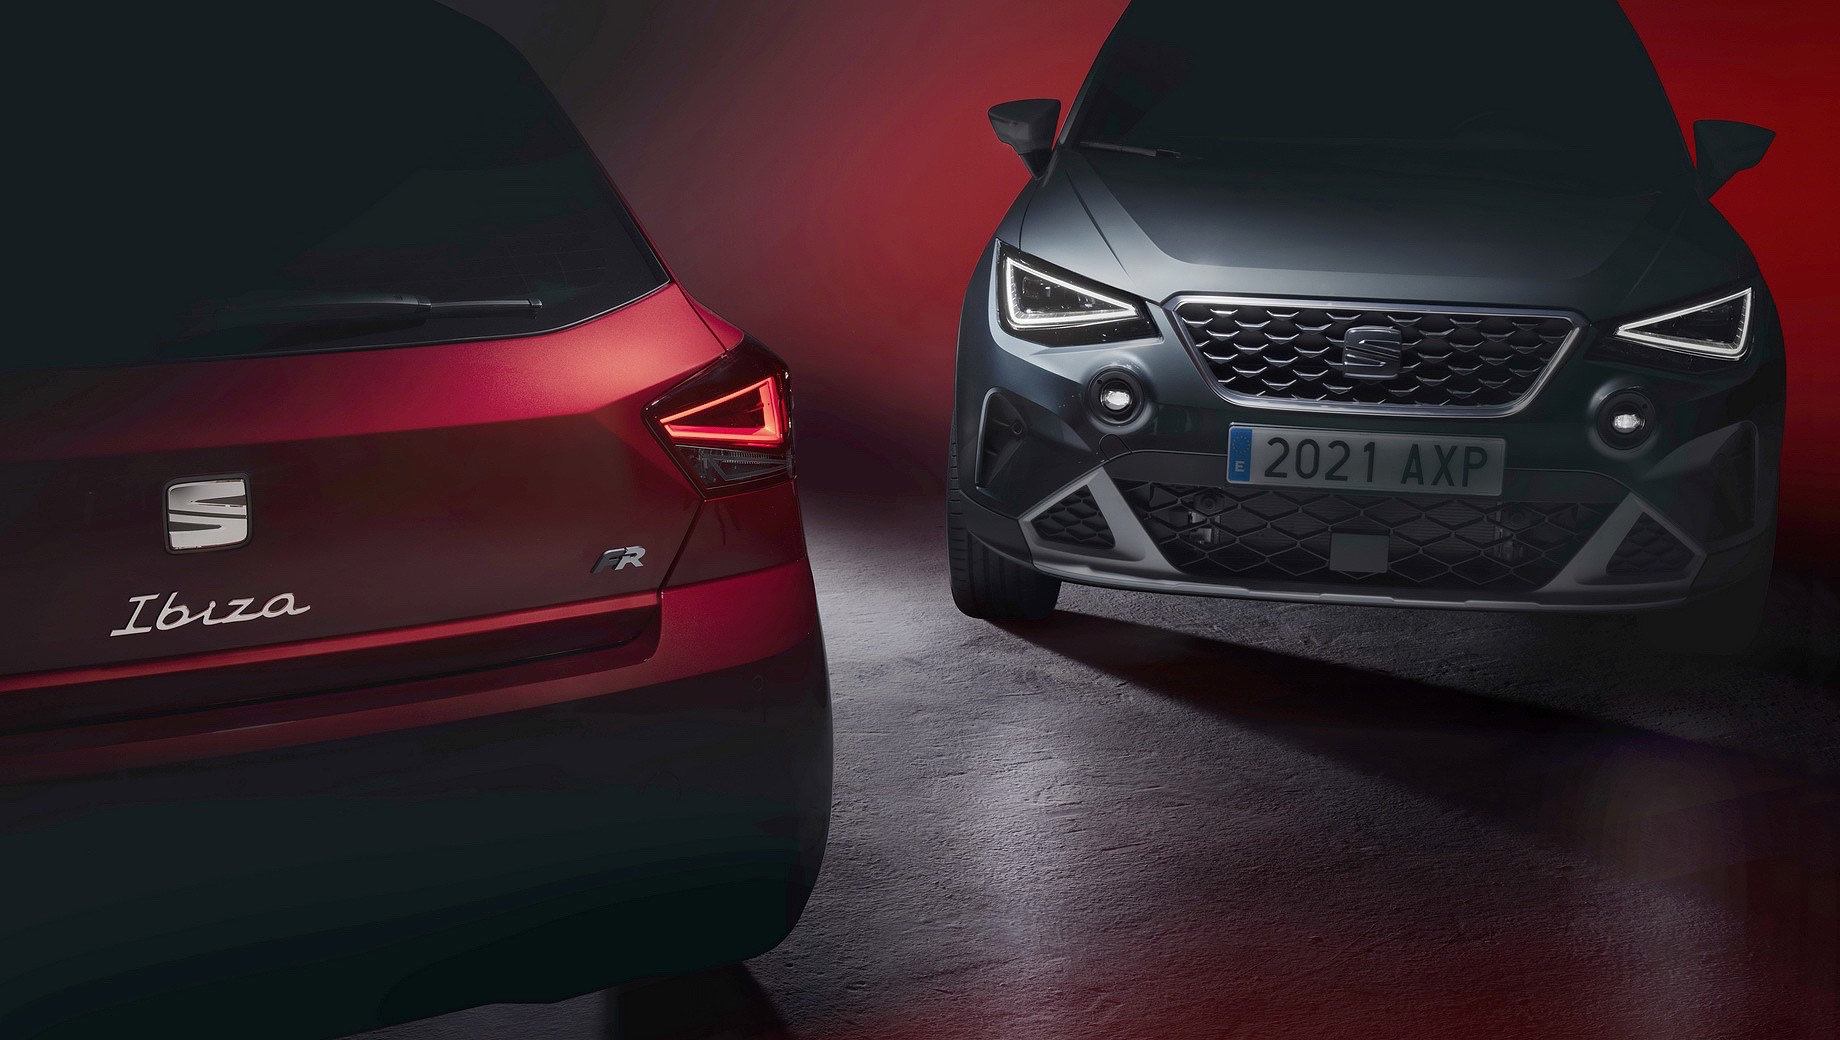 The latest generations of Seat's Arona SUV and Ibiza hatchback came out six months one after another in 2017, but their facelifted versions will be revealed side-by-side next week.